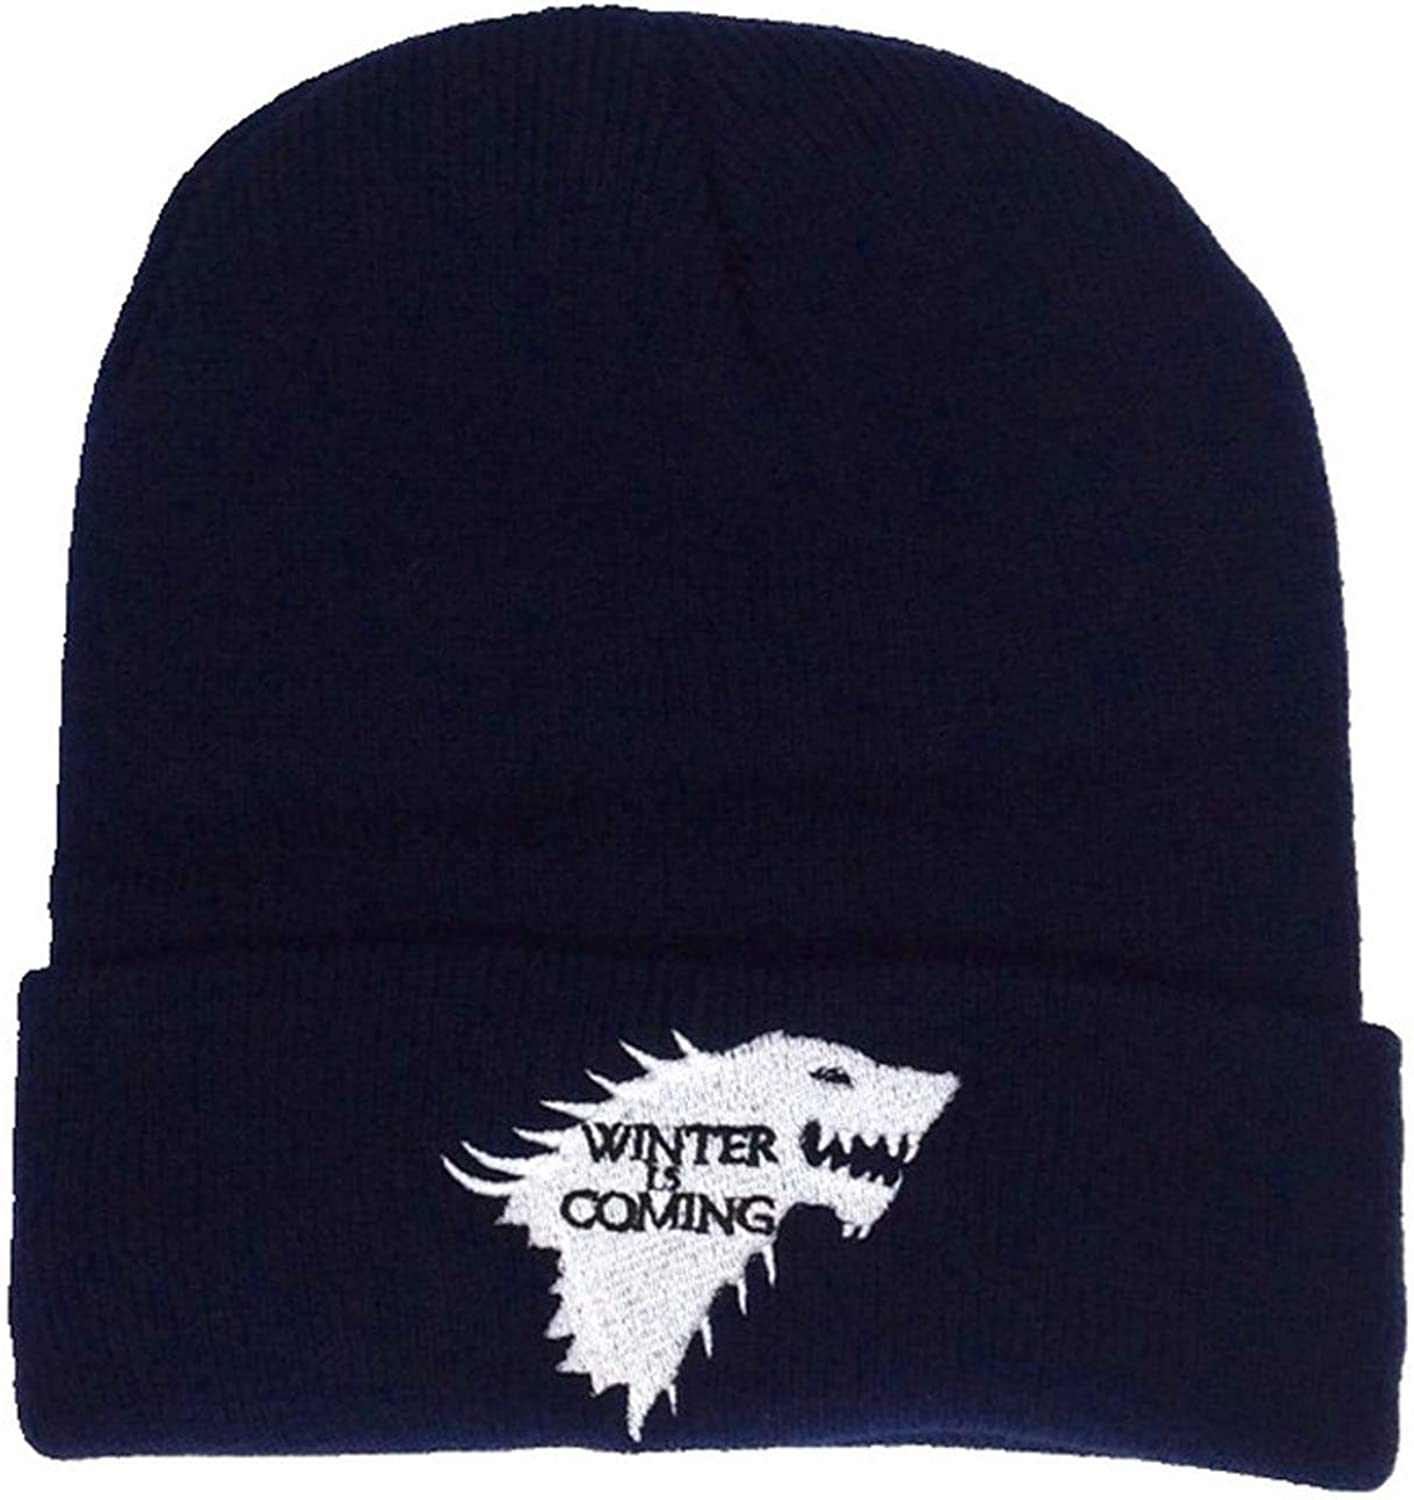 Stark Beanie Hat Knit Cap Unisex Adjustable Cosplay Hats Canis Dirus Winter is Coming